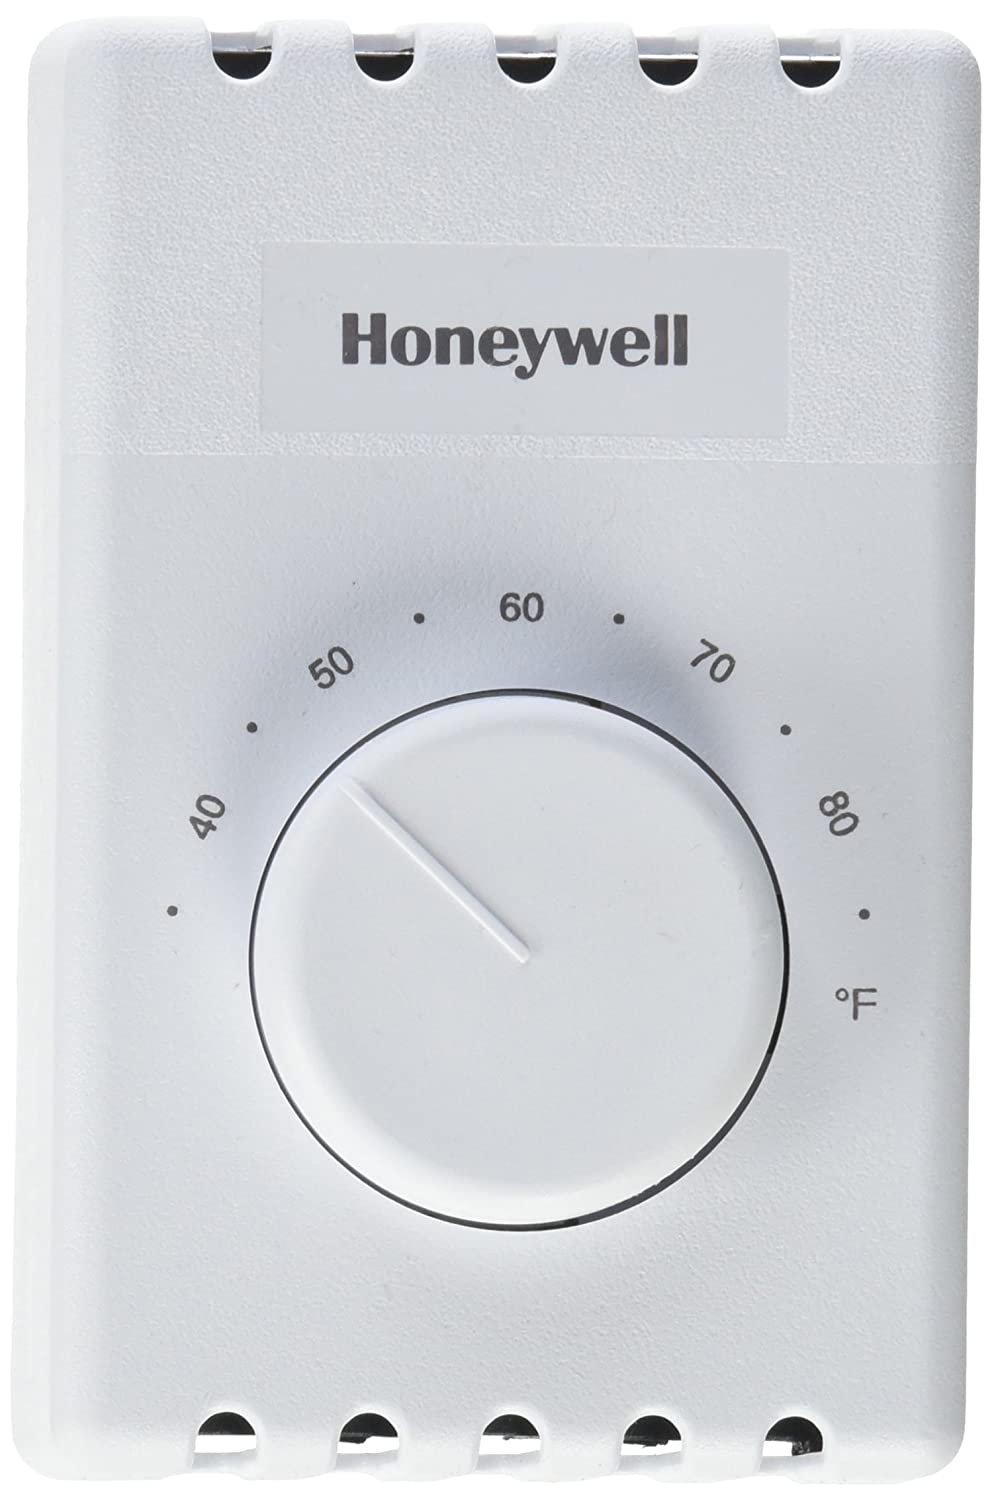 Honeywell T410A1013 Electric Baseboard Heat Thermostat: Nonprogrammable  Household Thermostats: Amazon.com: Industrial & Scientific